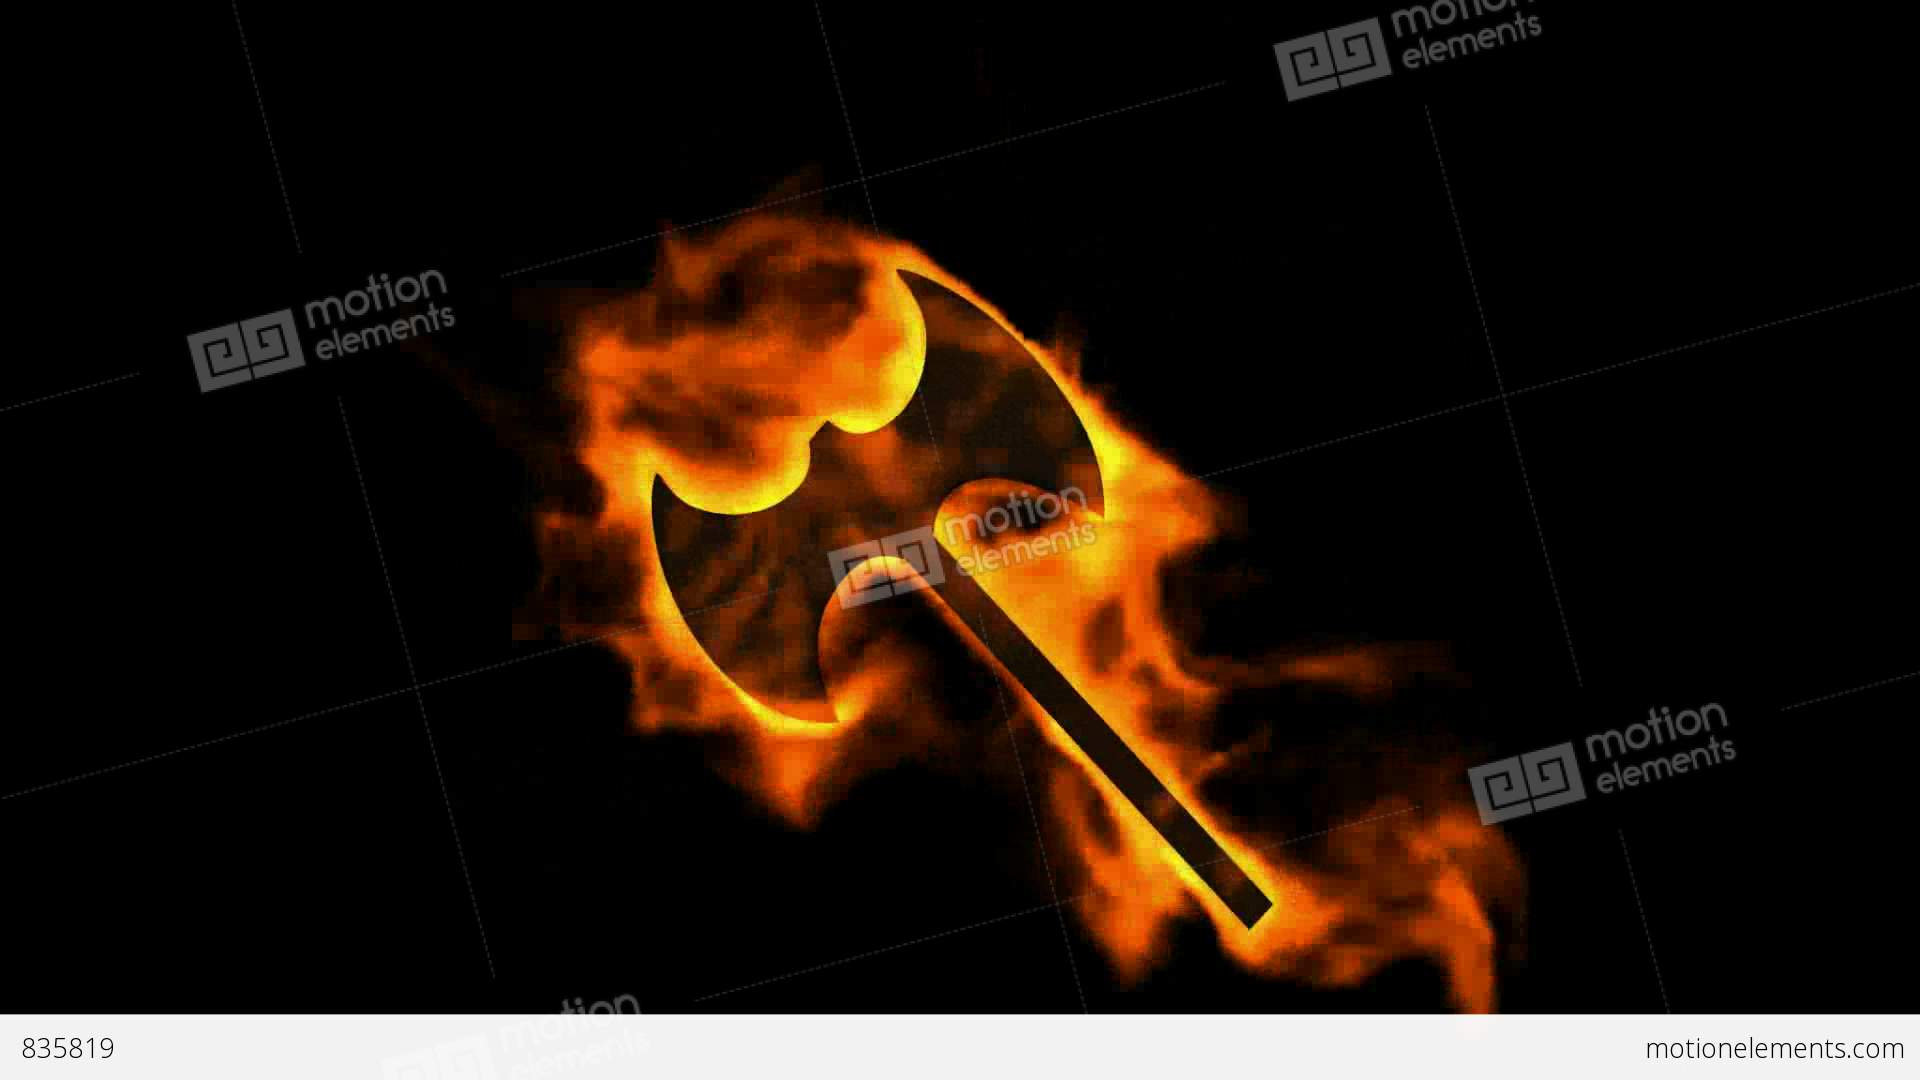 Fire axe symbolburning ancient arms stock animation 835819 fire axe symbolburning ancient arms stock video footage buycottarizona Choice Image